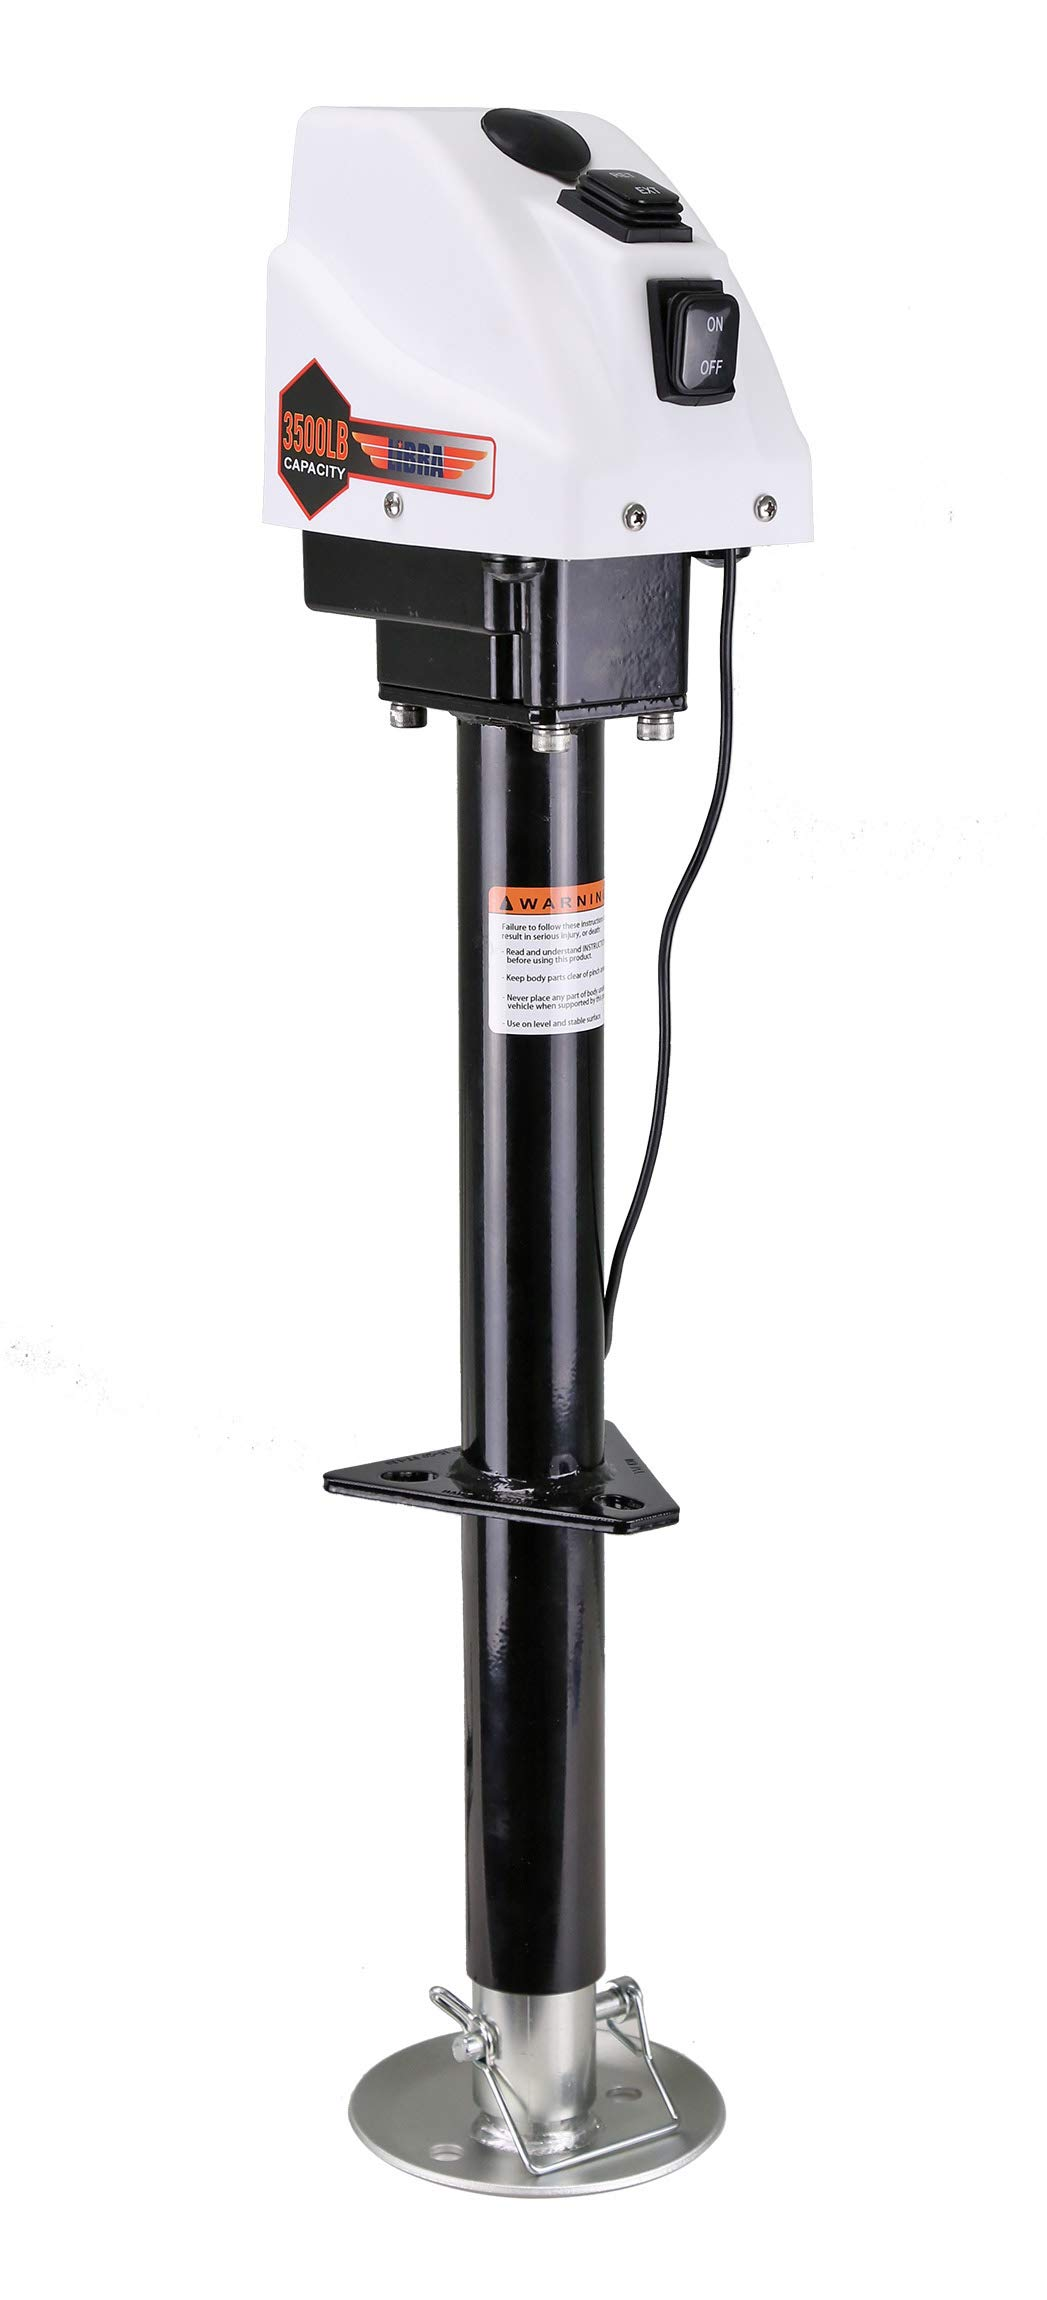 3500lbs Trailer/RV Electric Power A-Frame Tongue Jack by Libra